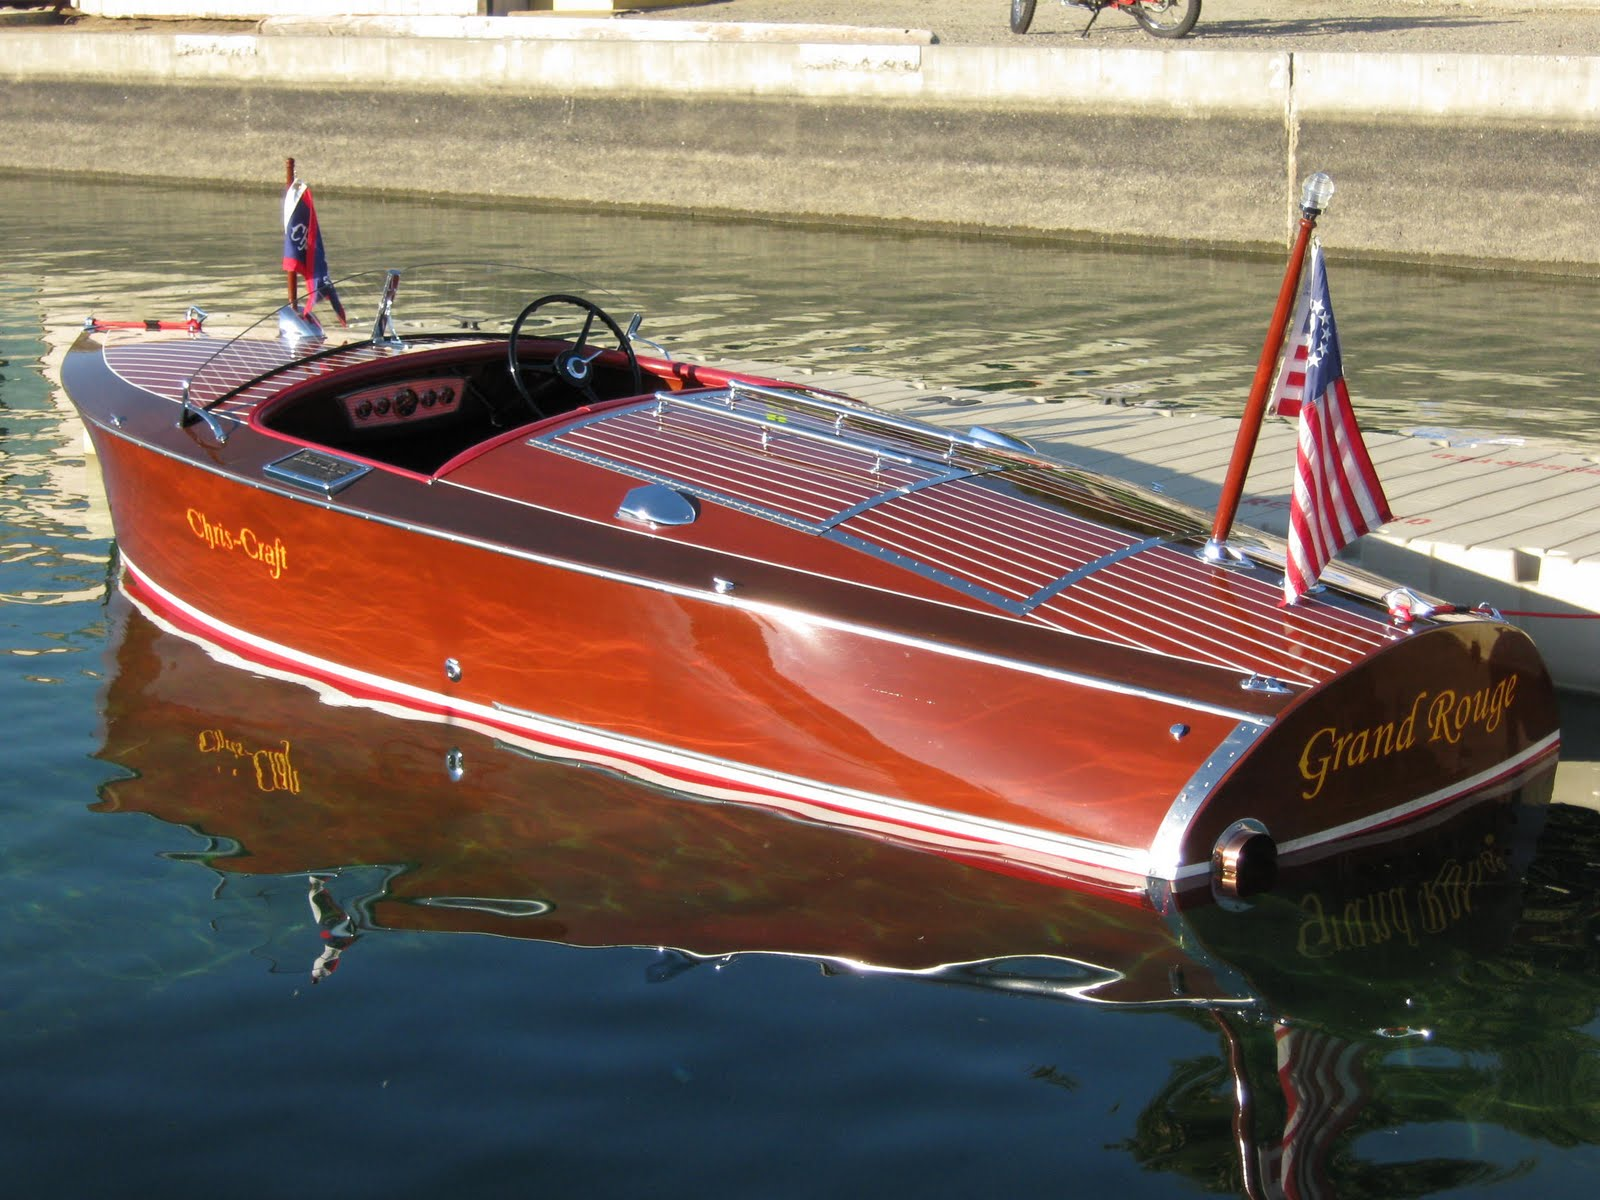 ... Chelan – Wooden Boat Show Edition | Classic Boats / Woody Boater